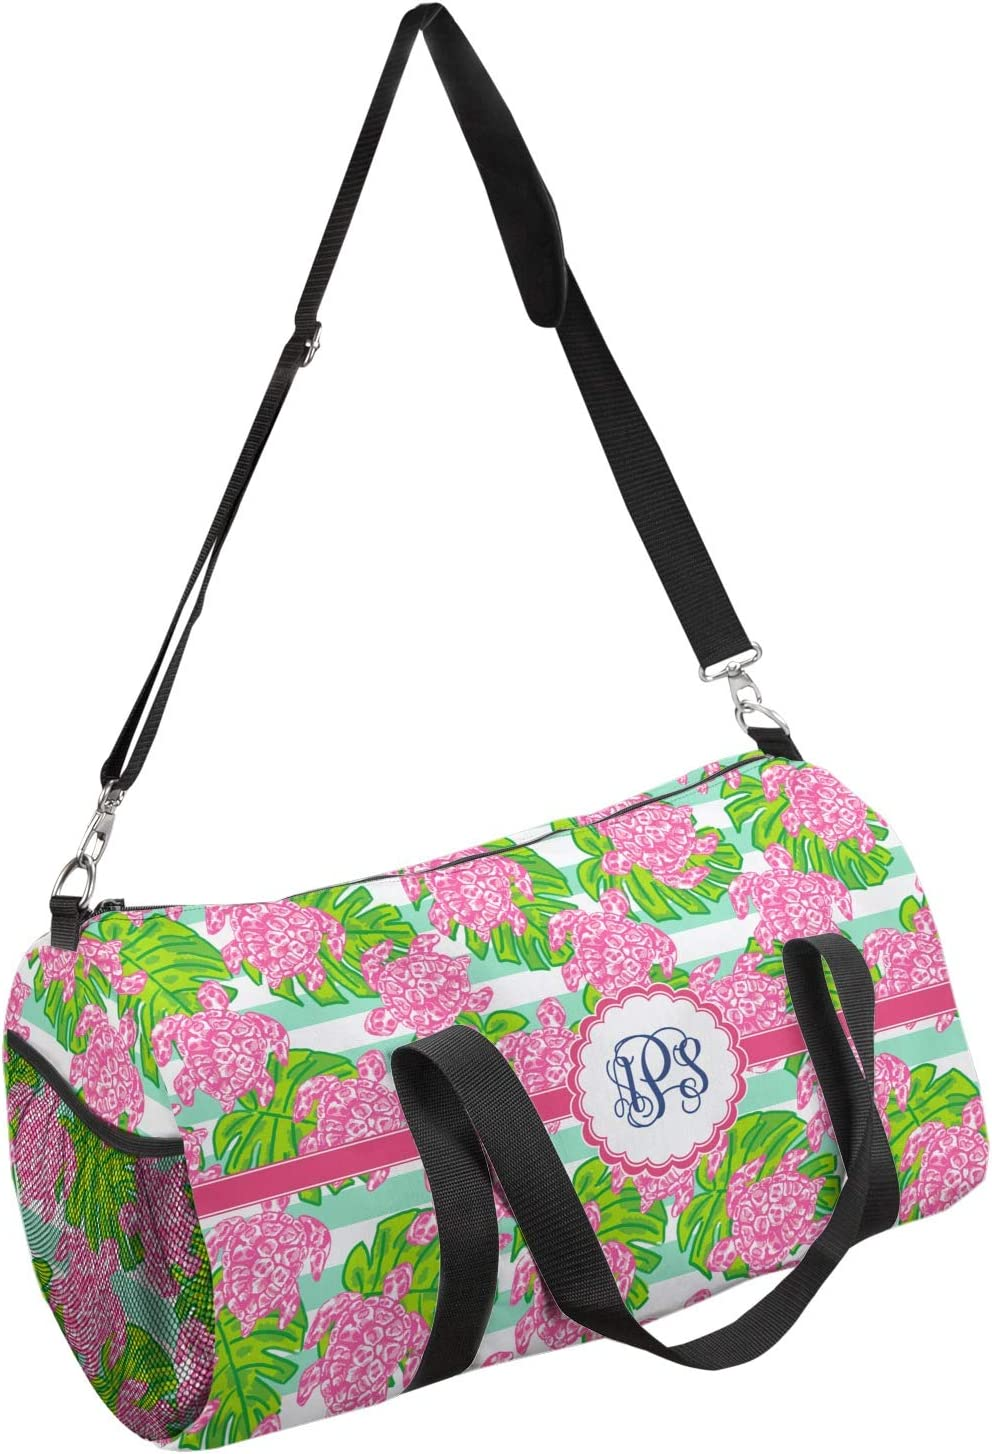 YouCustomizeIt Preppy Duffel Bag Personalized